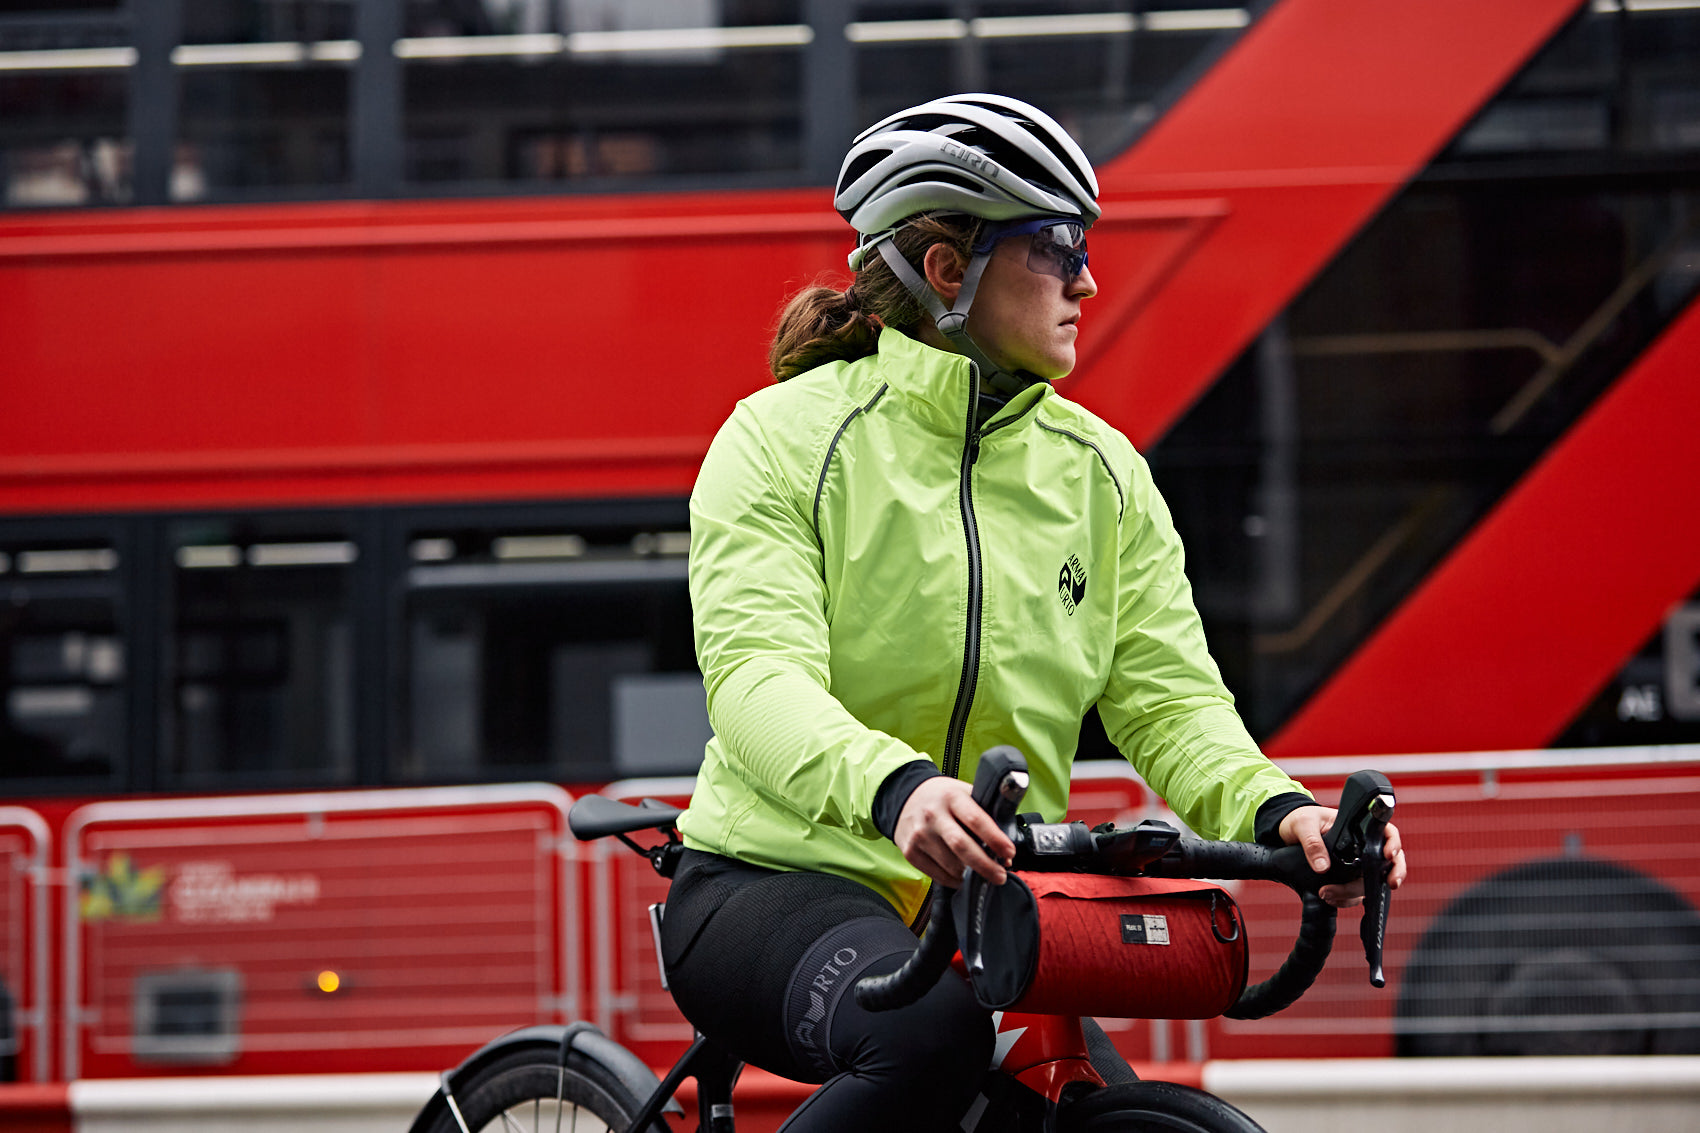 Commute In Confidence With The New Pro-Flect Essential Cycling Jacket